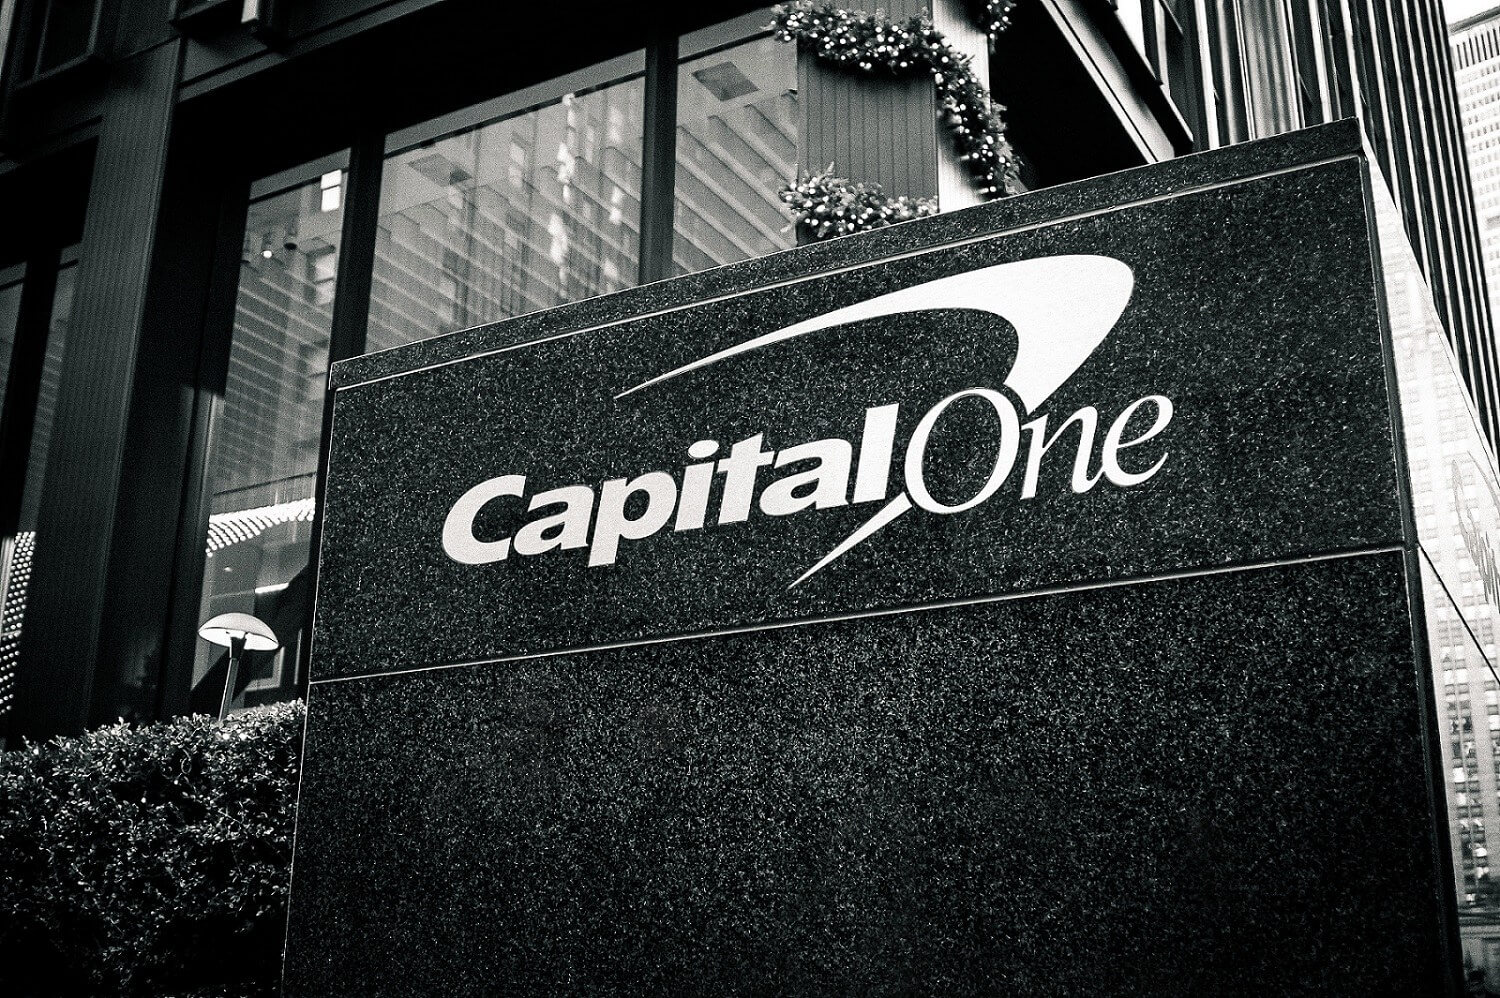 Capital One hack exposed 100 million US customers' personal details